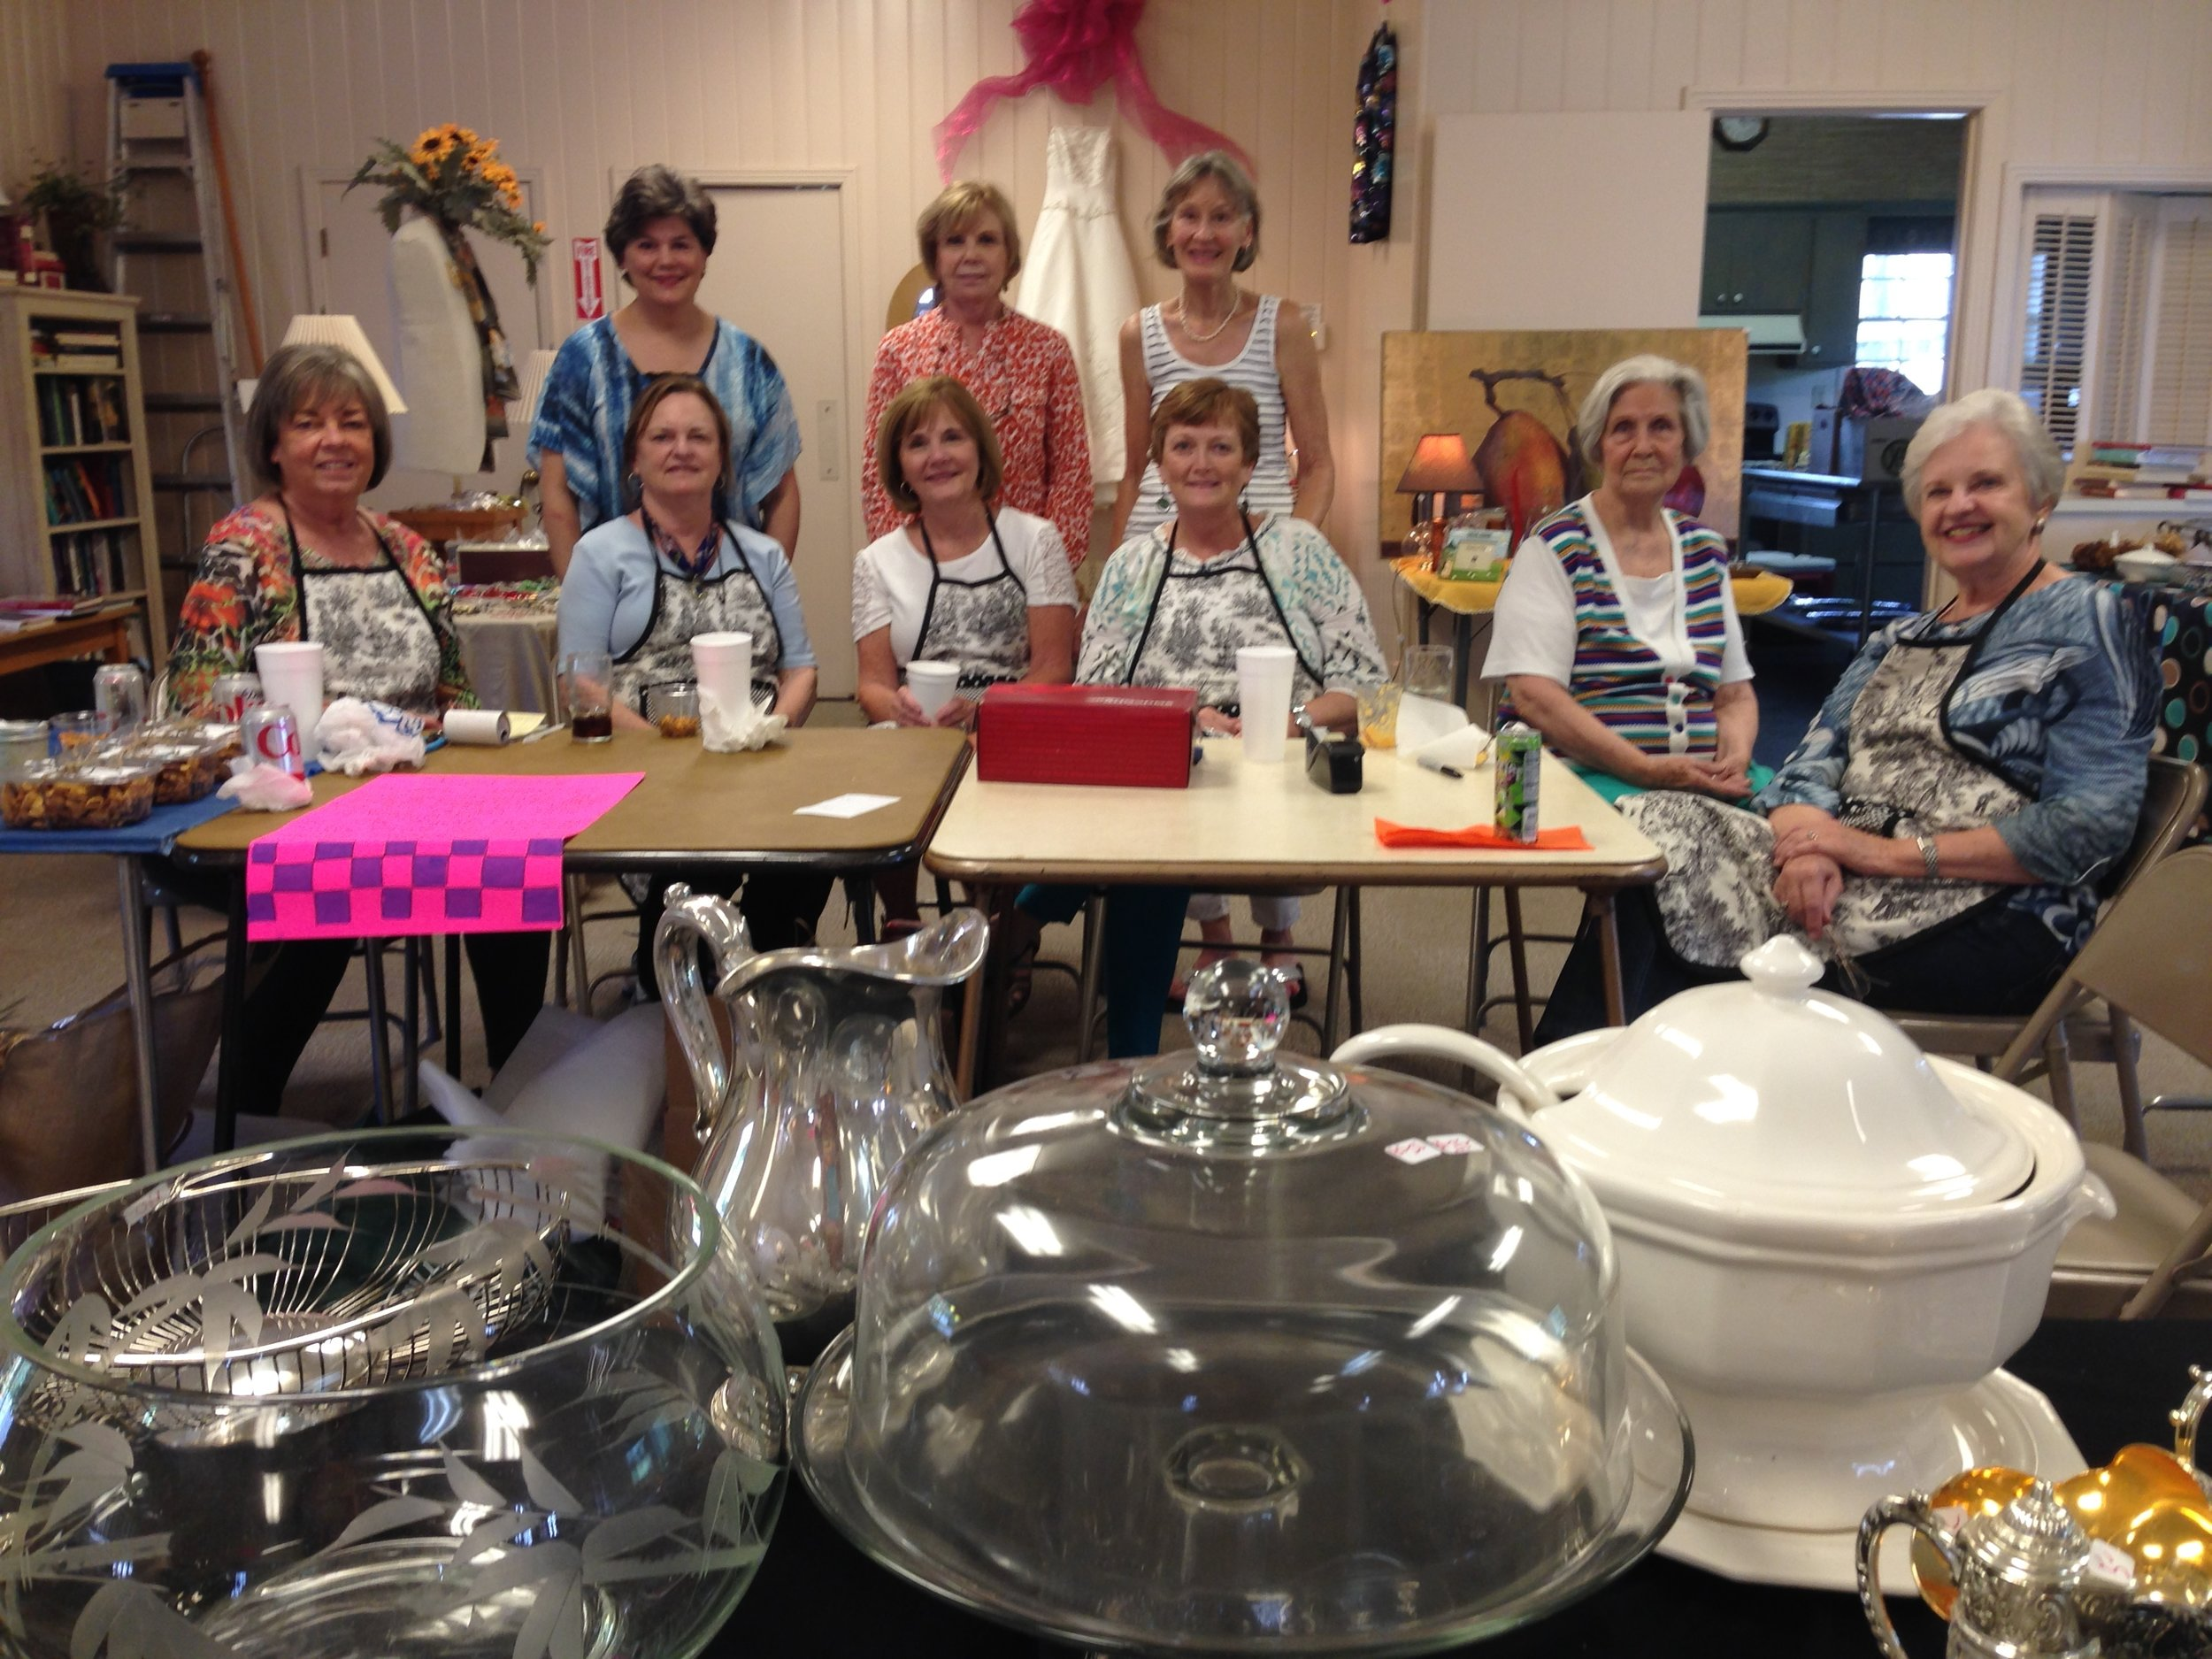 Church Members hold Rummage Sale to Raise Funds for Outreach